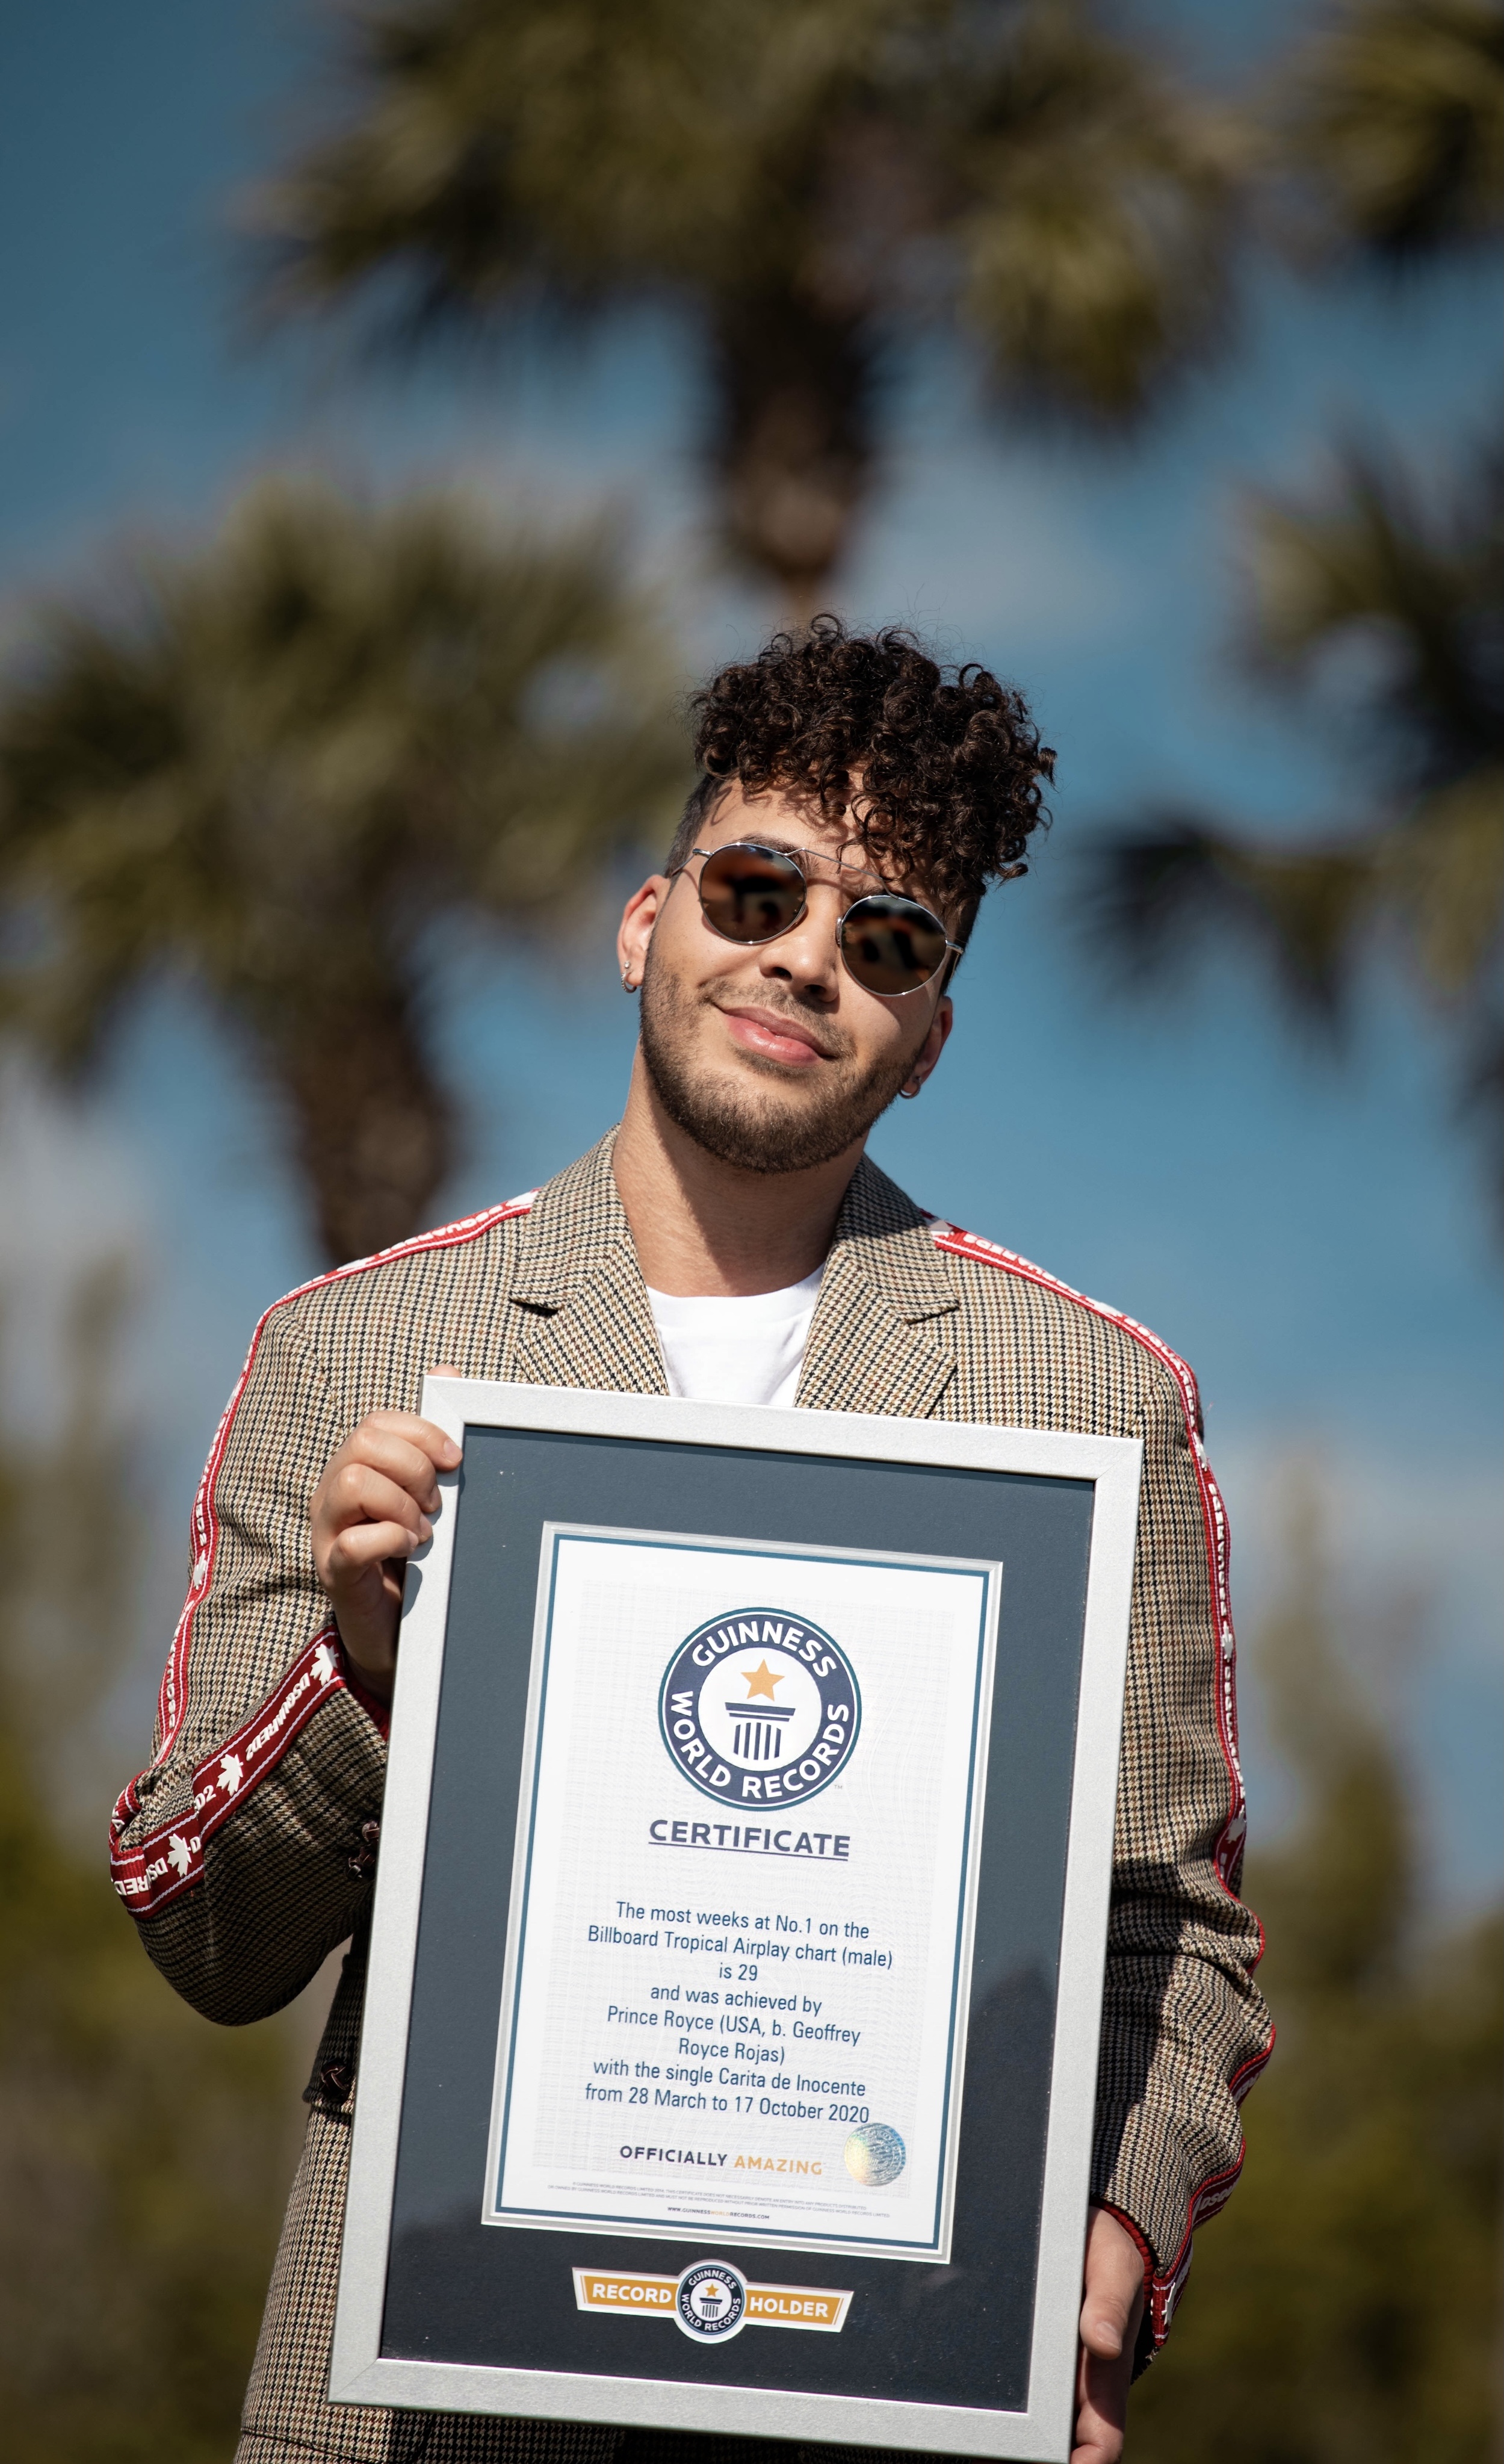 Prince Royce with GWR certificate